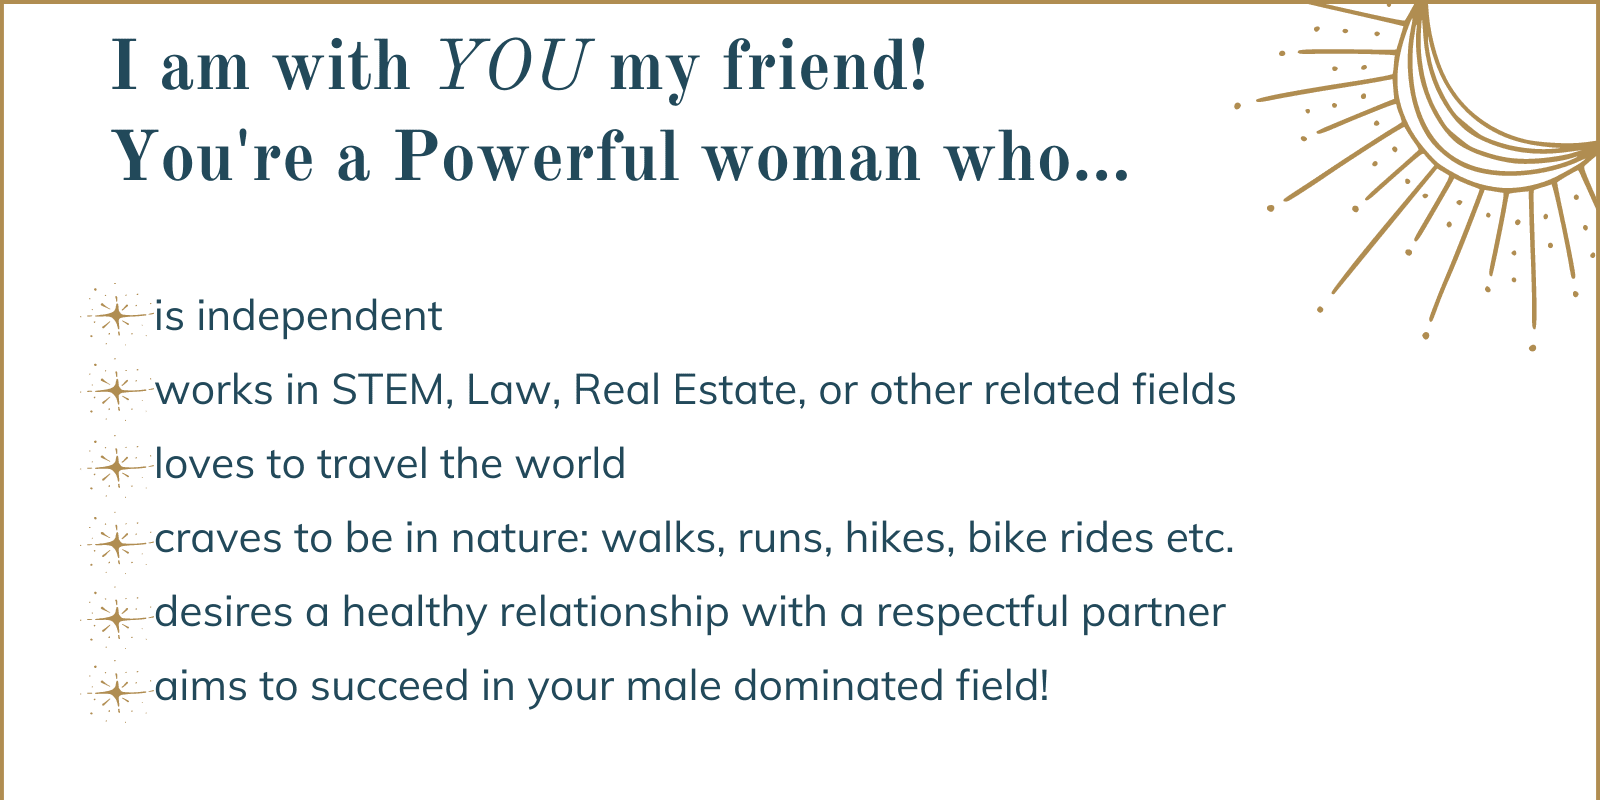 You're a powerful professional woman in stem, law, real estate. You're independent, travel the world, goes running in the woods, wants healthy relationships, wants to succeed in male dominated field.